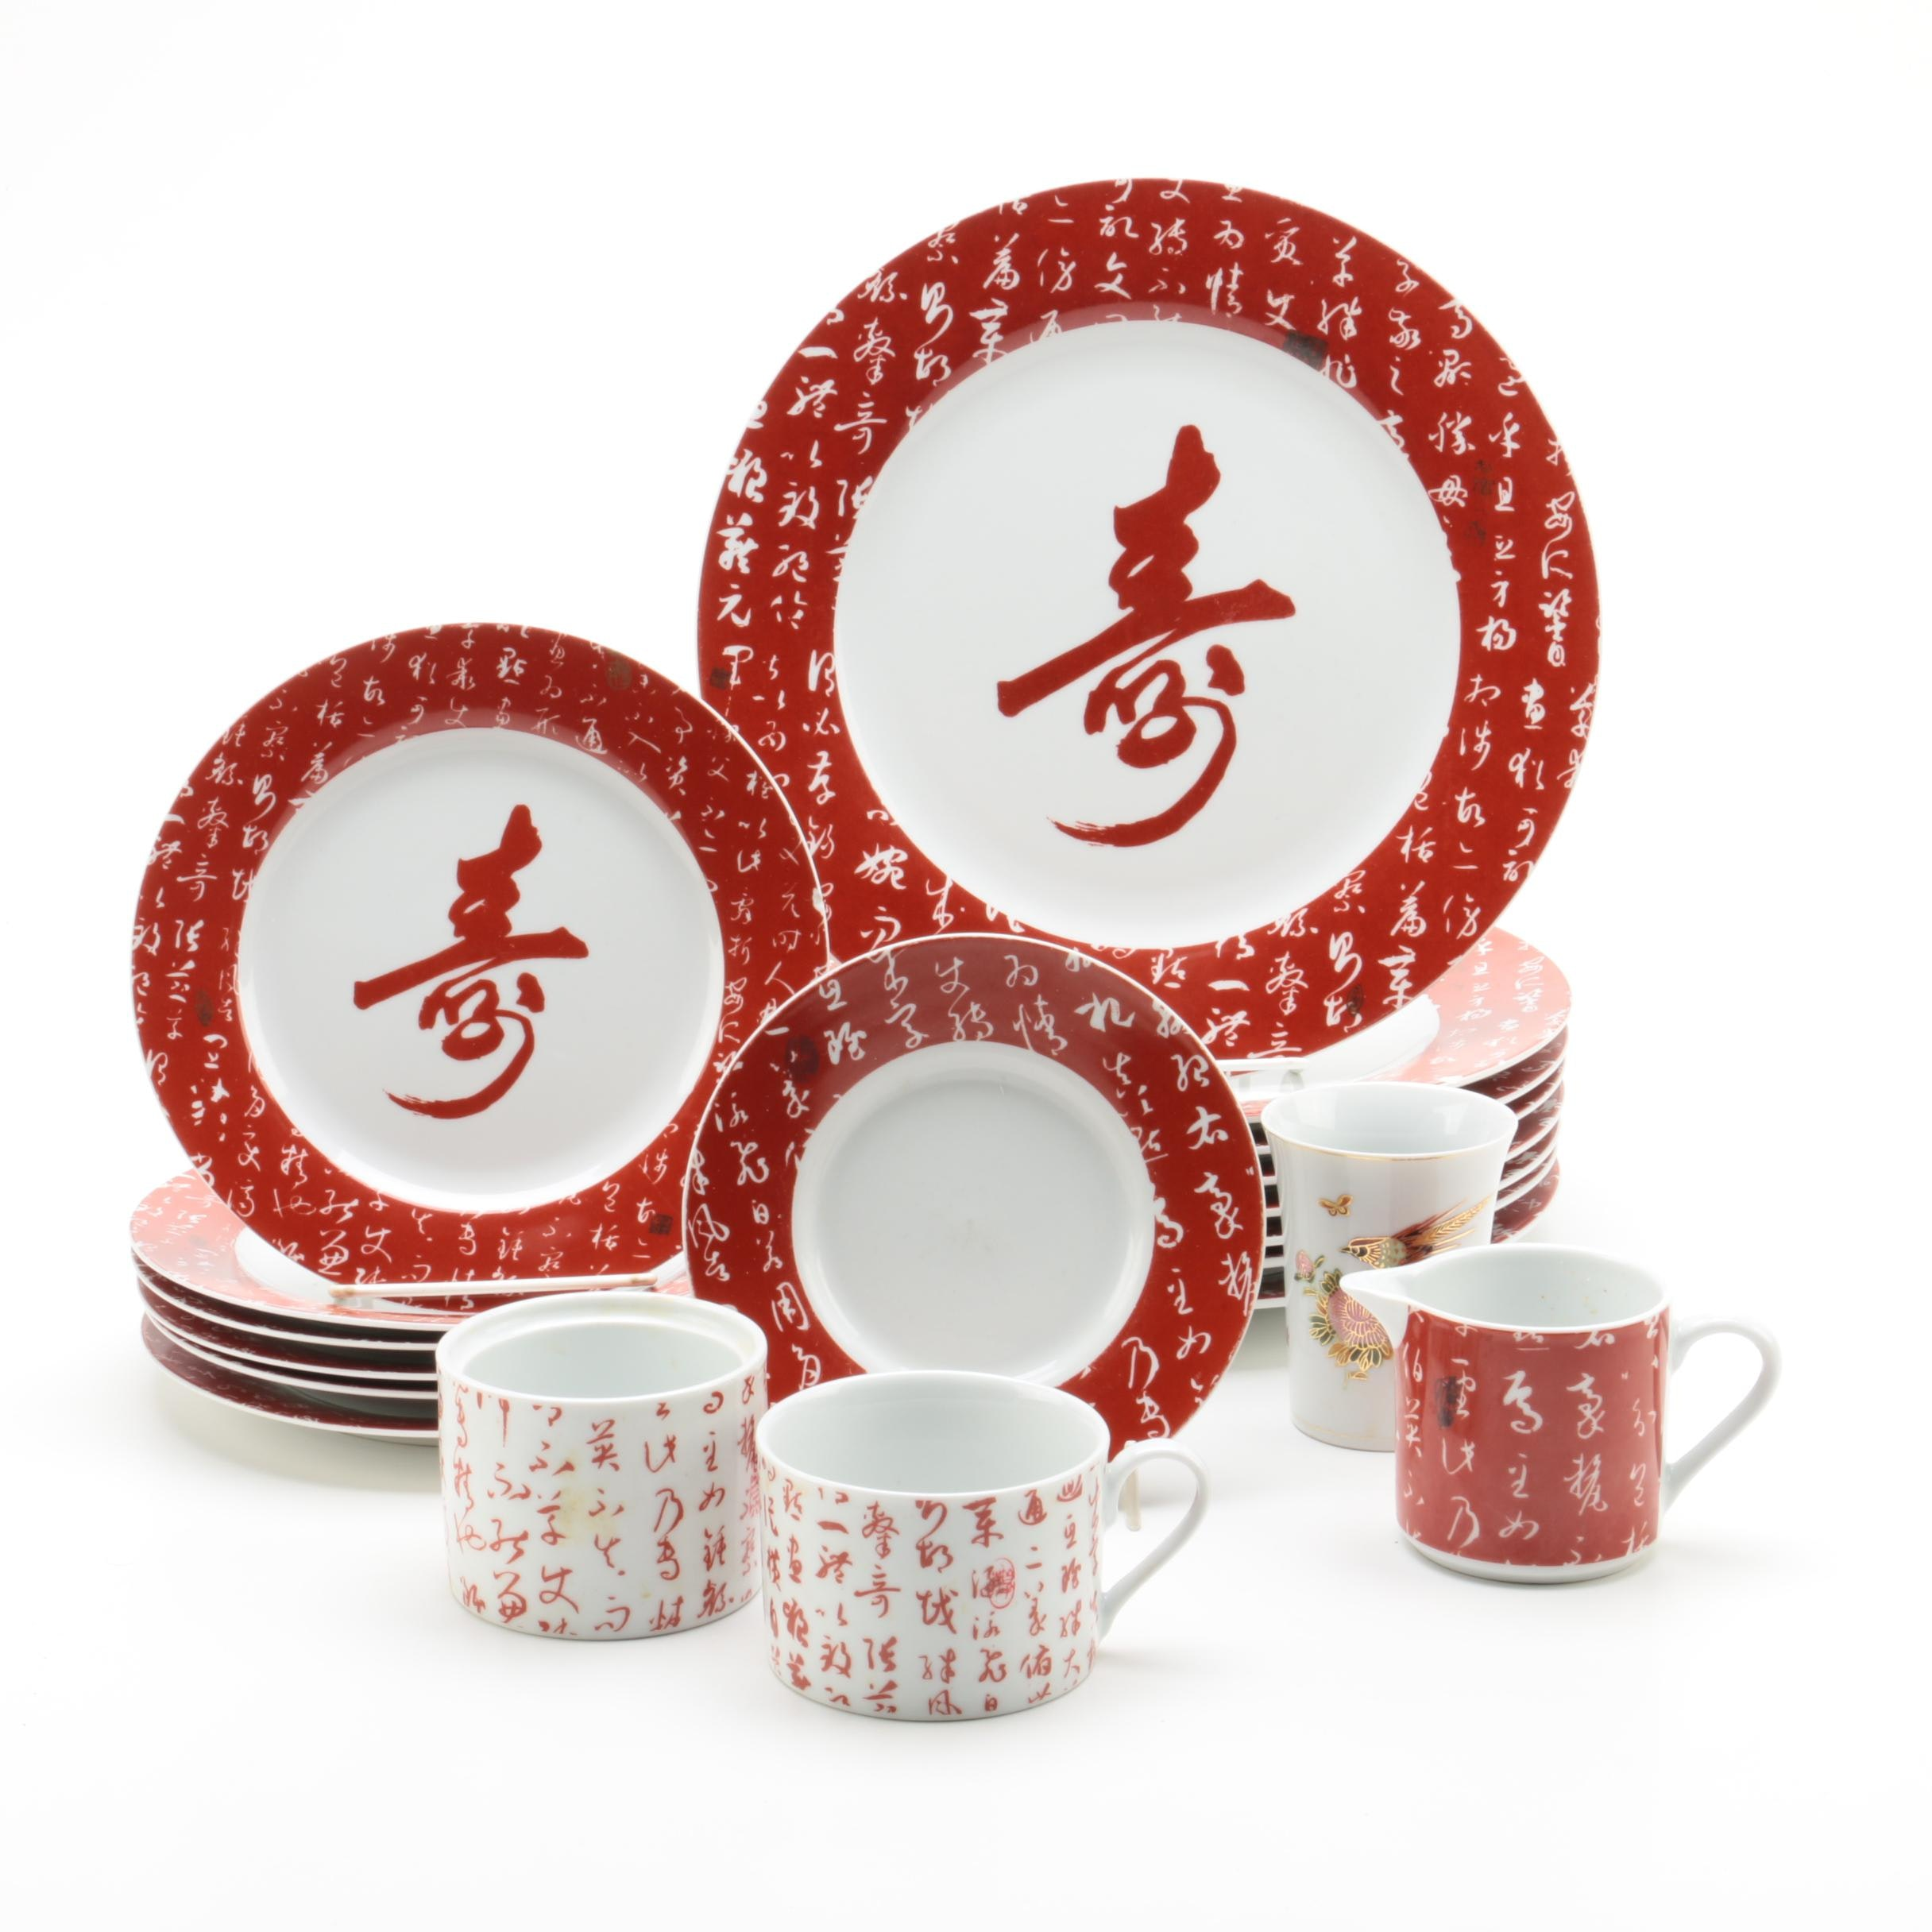 Chinese Porcelain Tableware with Longevity Character Pattern ...  sc 1 st  EBTH.com & Chinese Porcelain Tableware with Longevity Character Pattern : EBTH